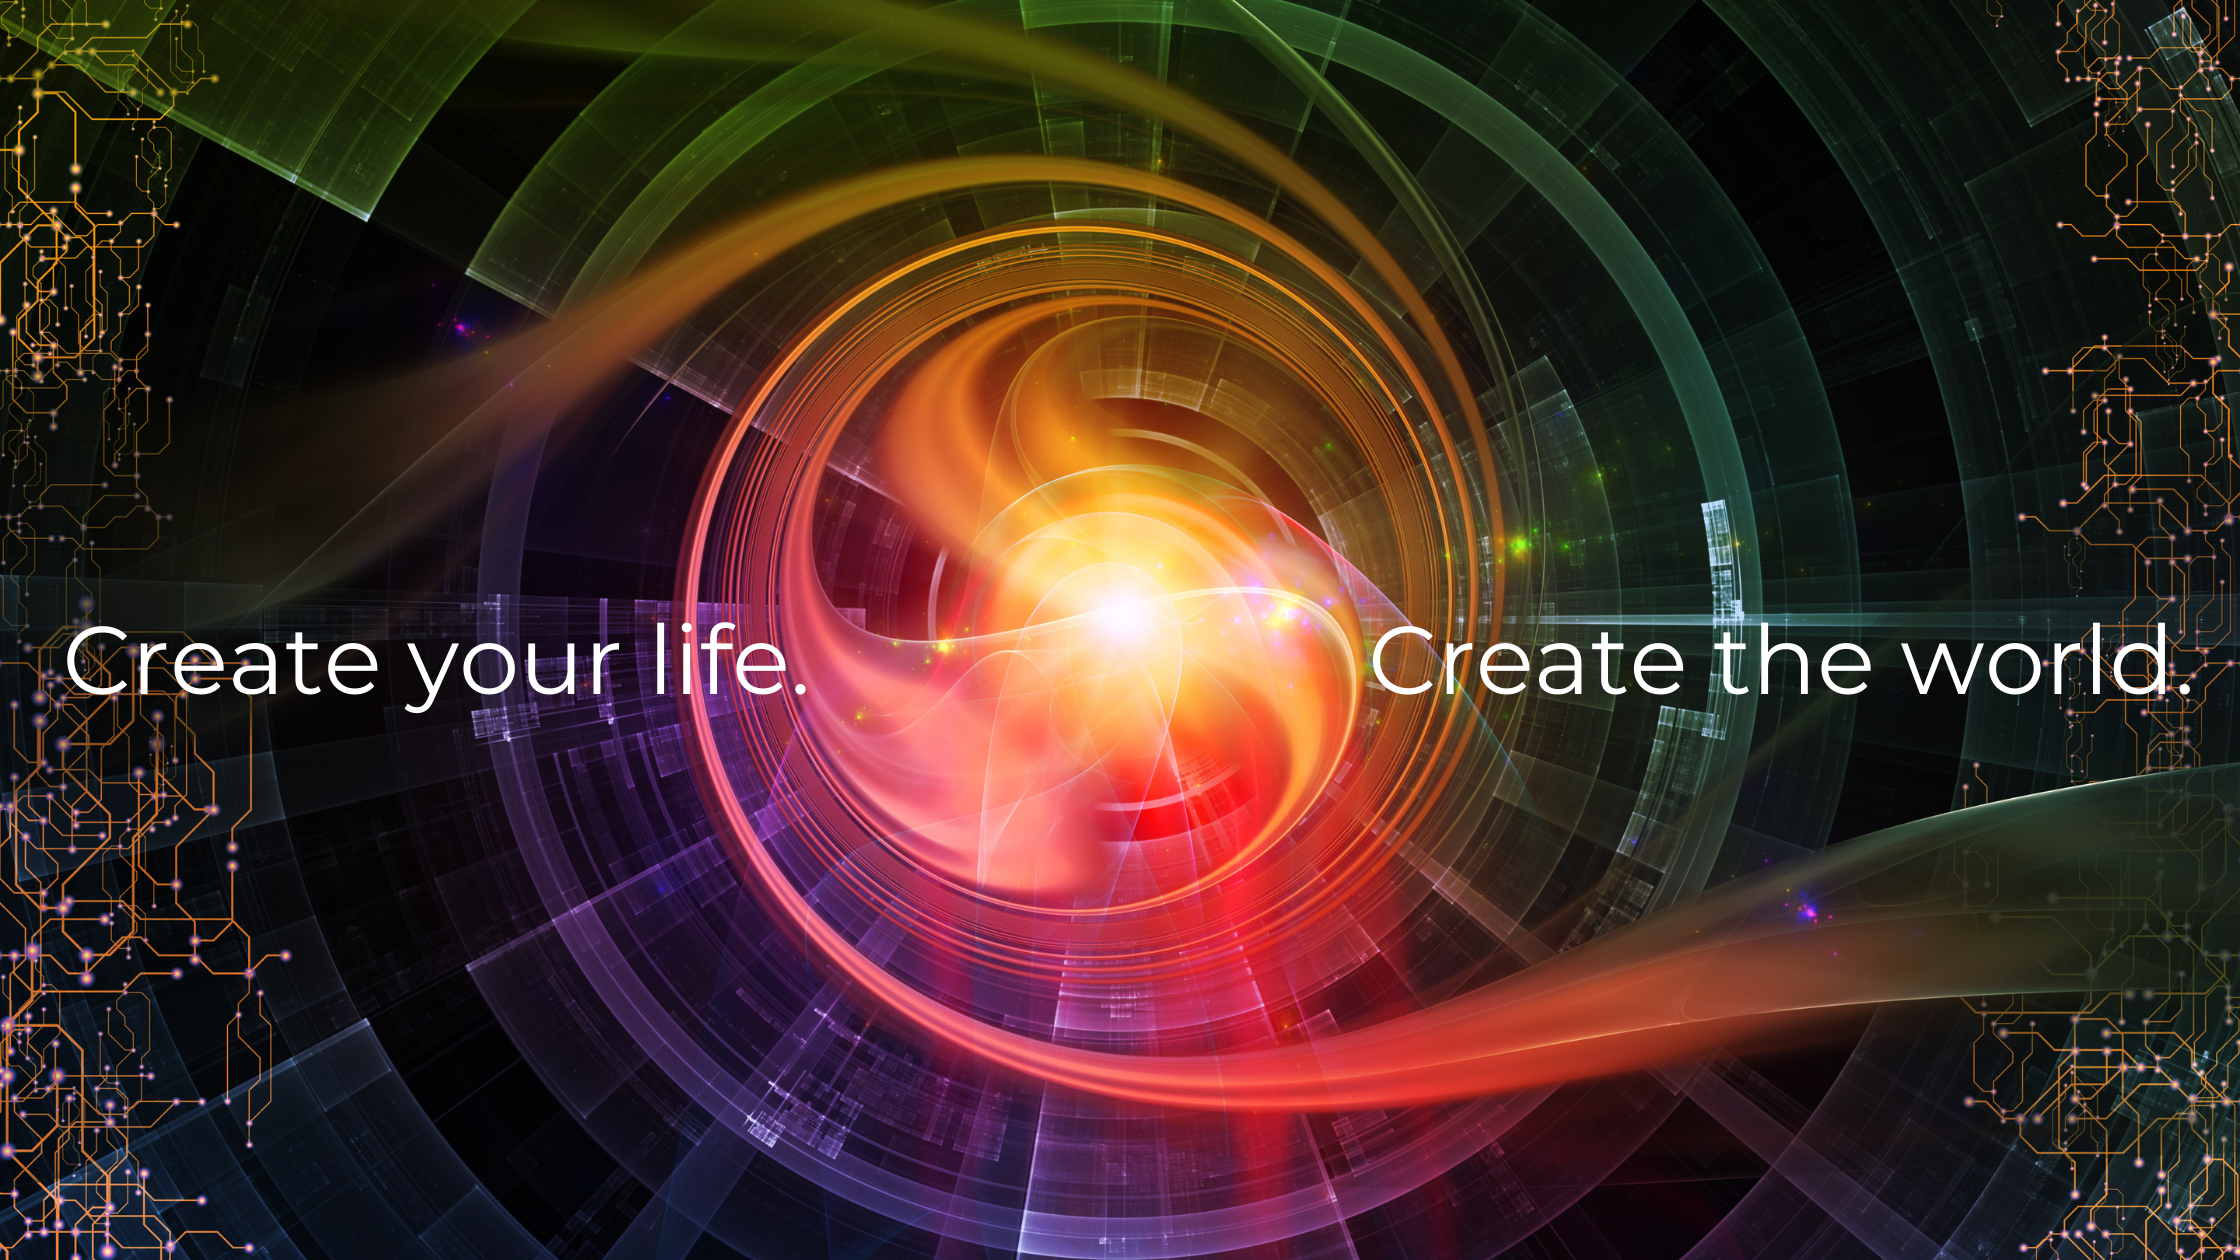 Create your life. Create the world. 2